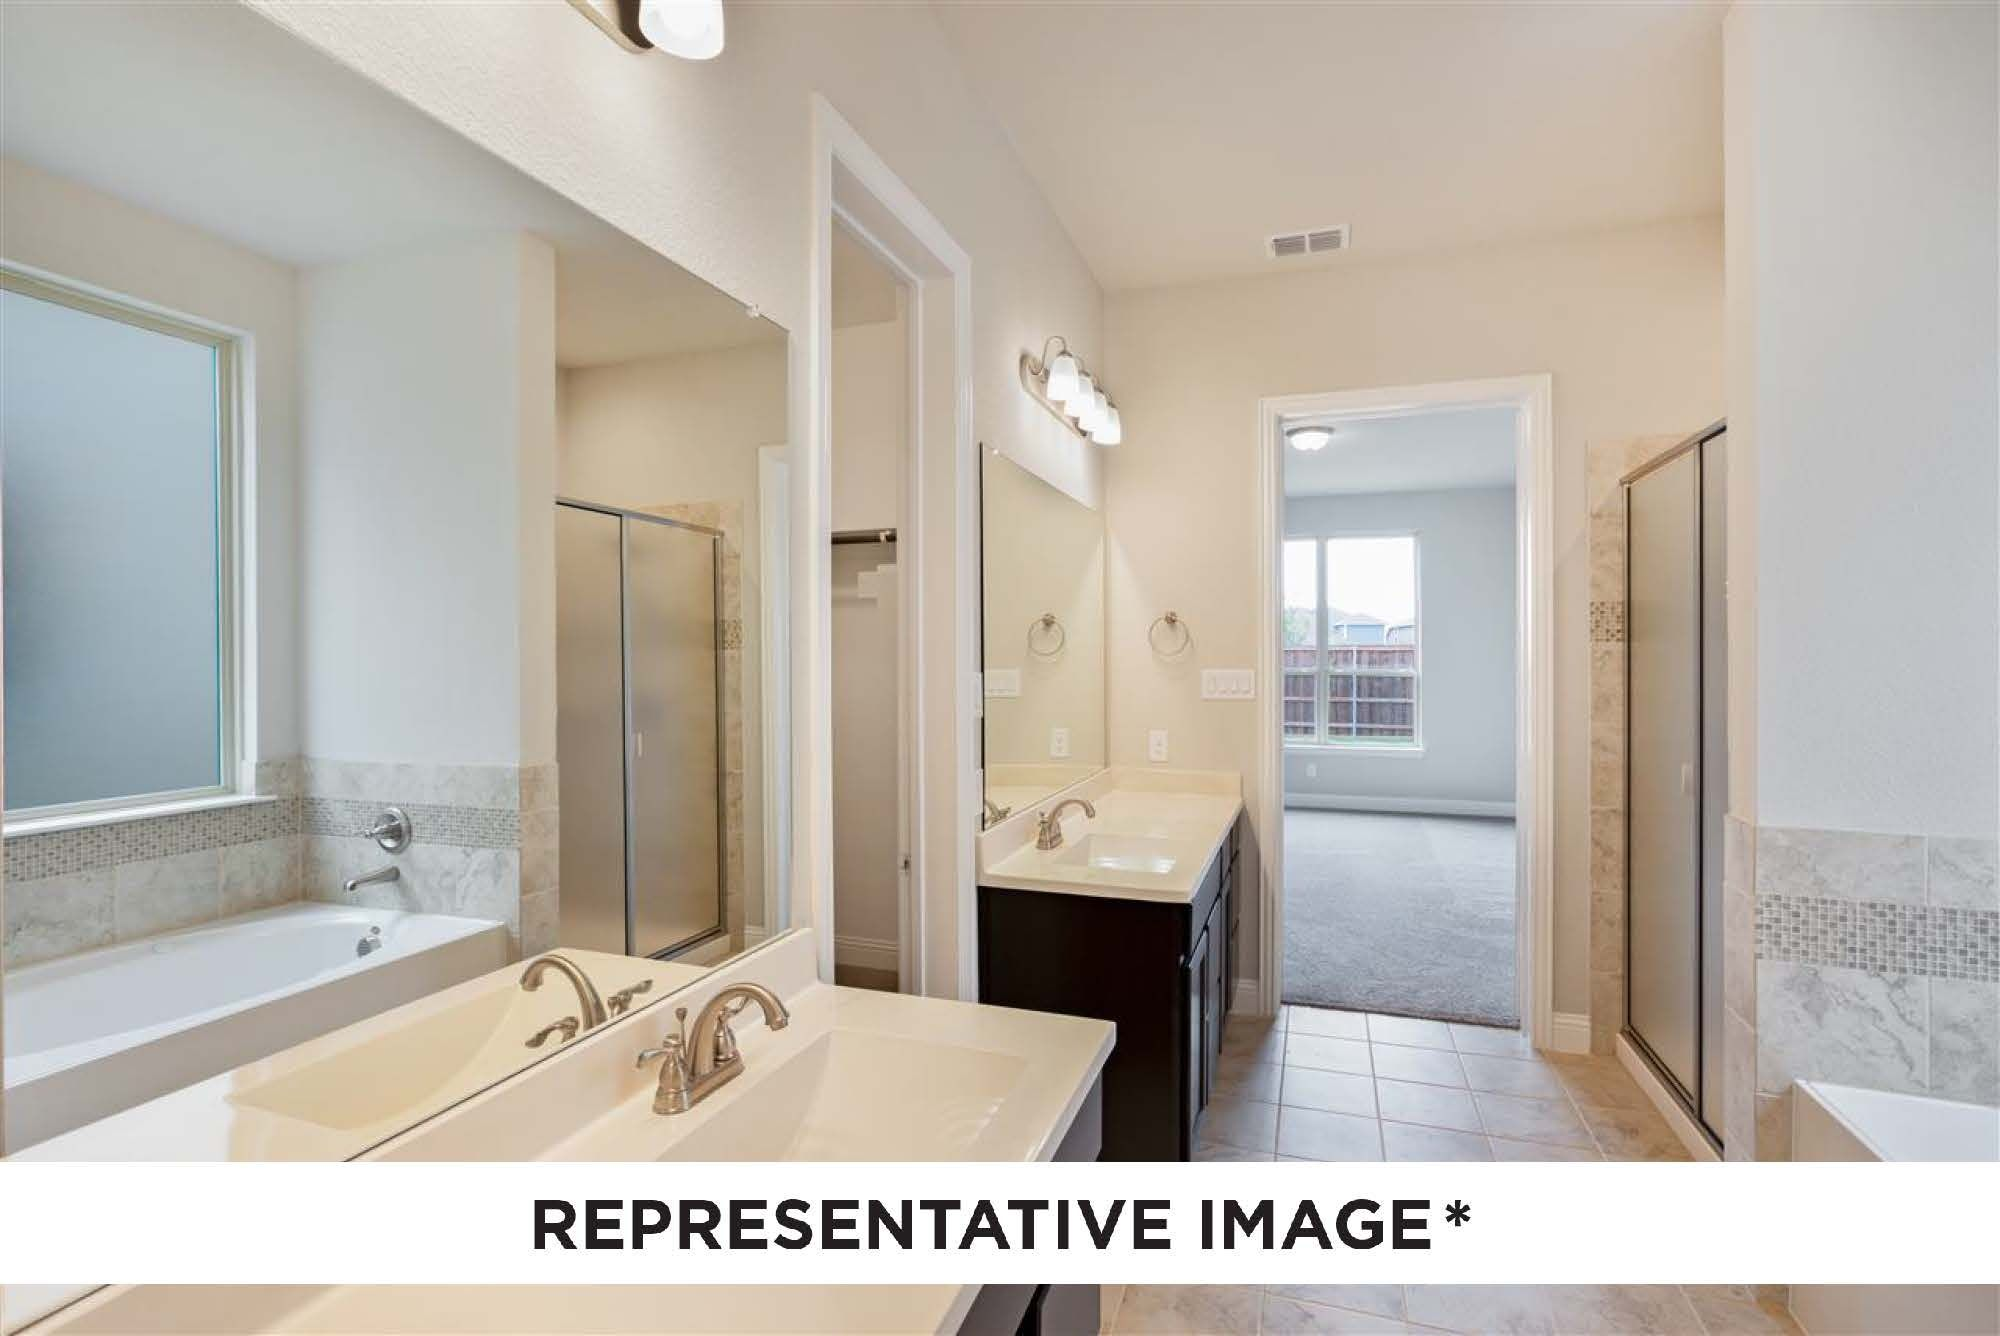 Bathroom featured in the Buckeye By HistoryMaker Homes    in Fort Worth, TX